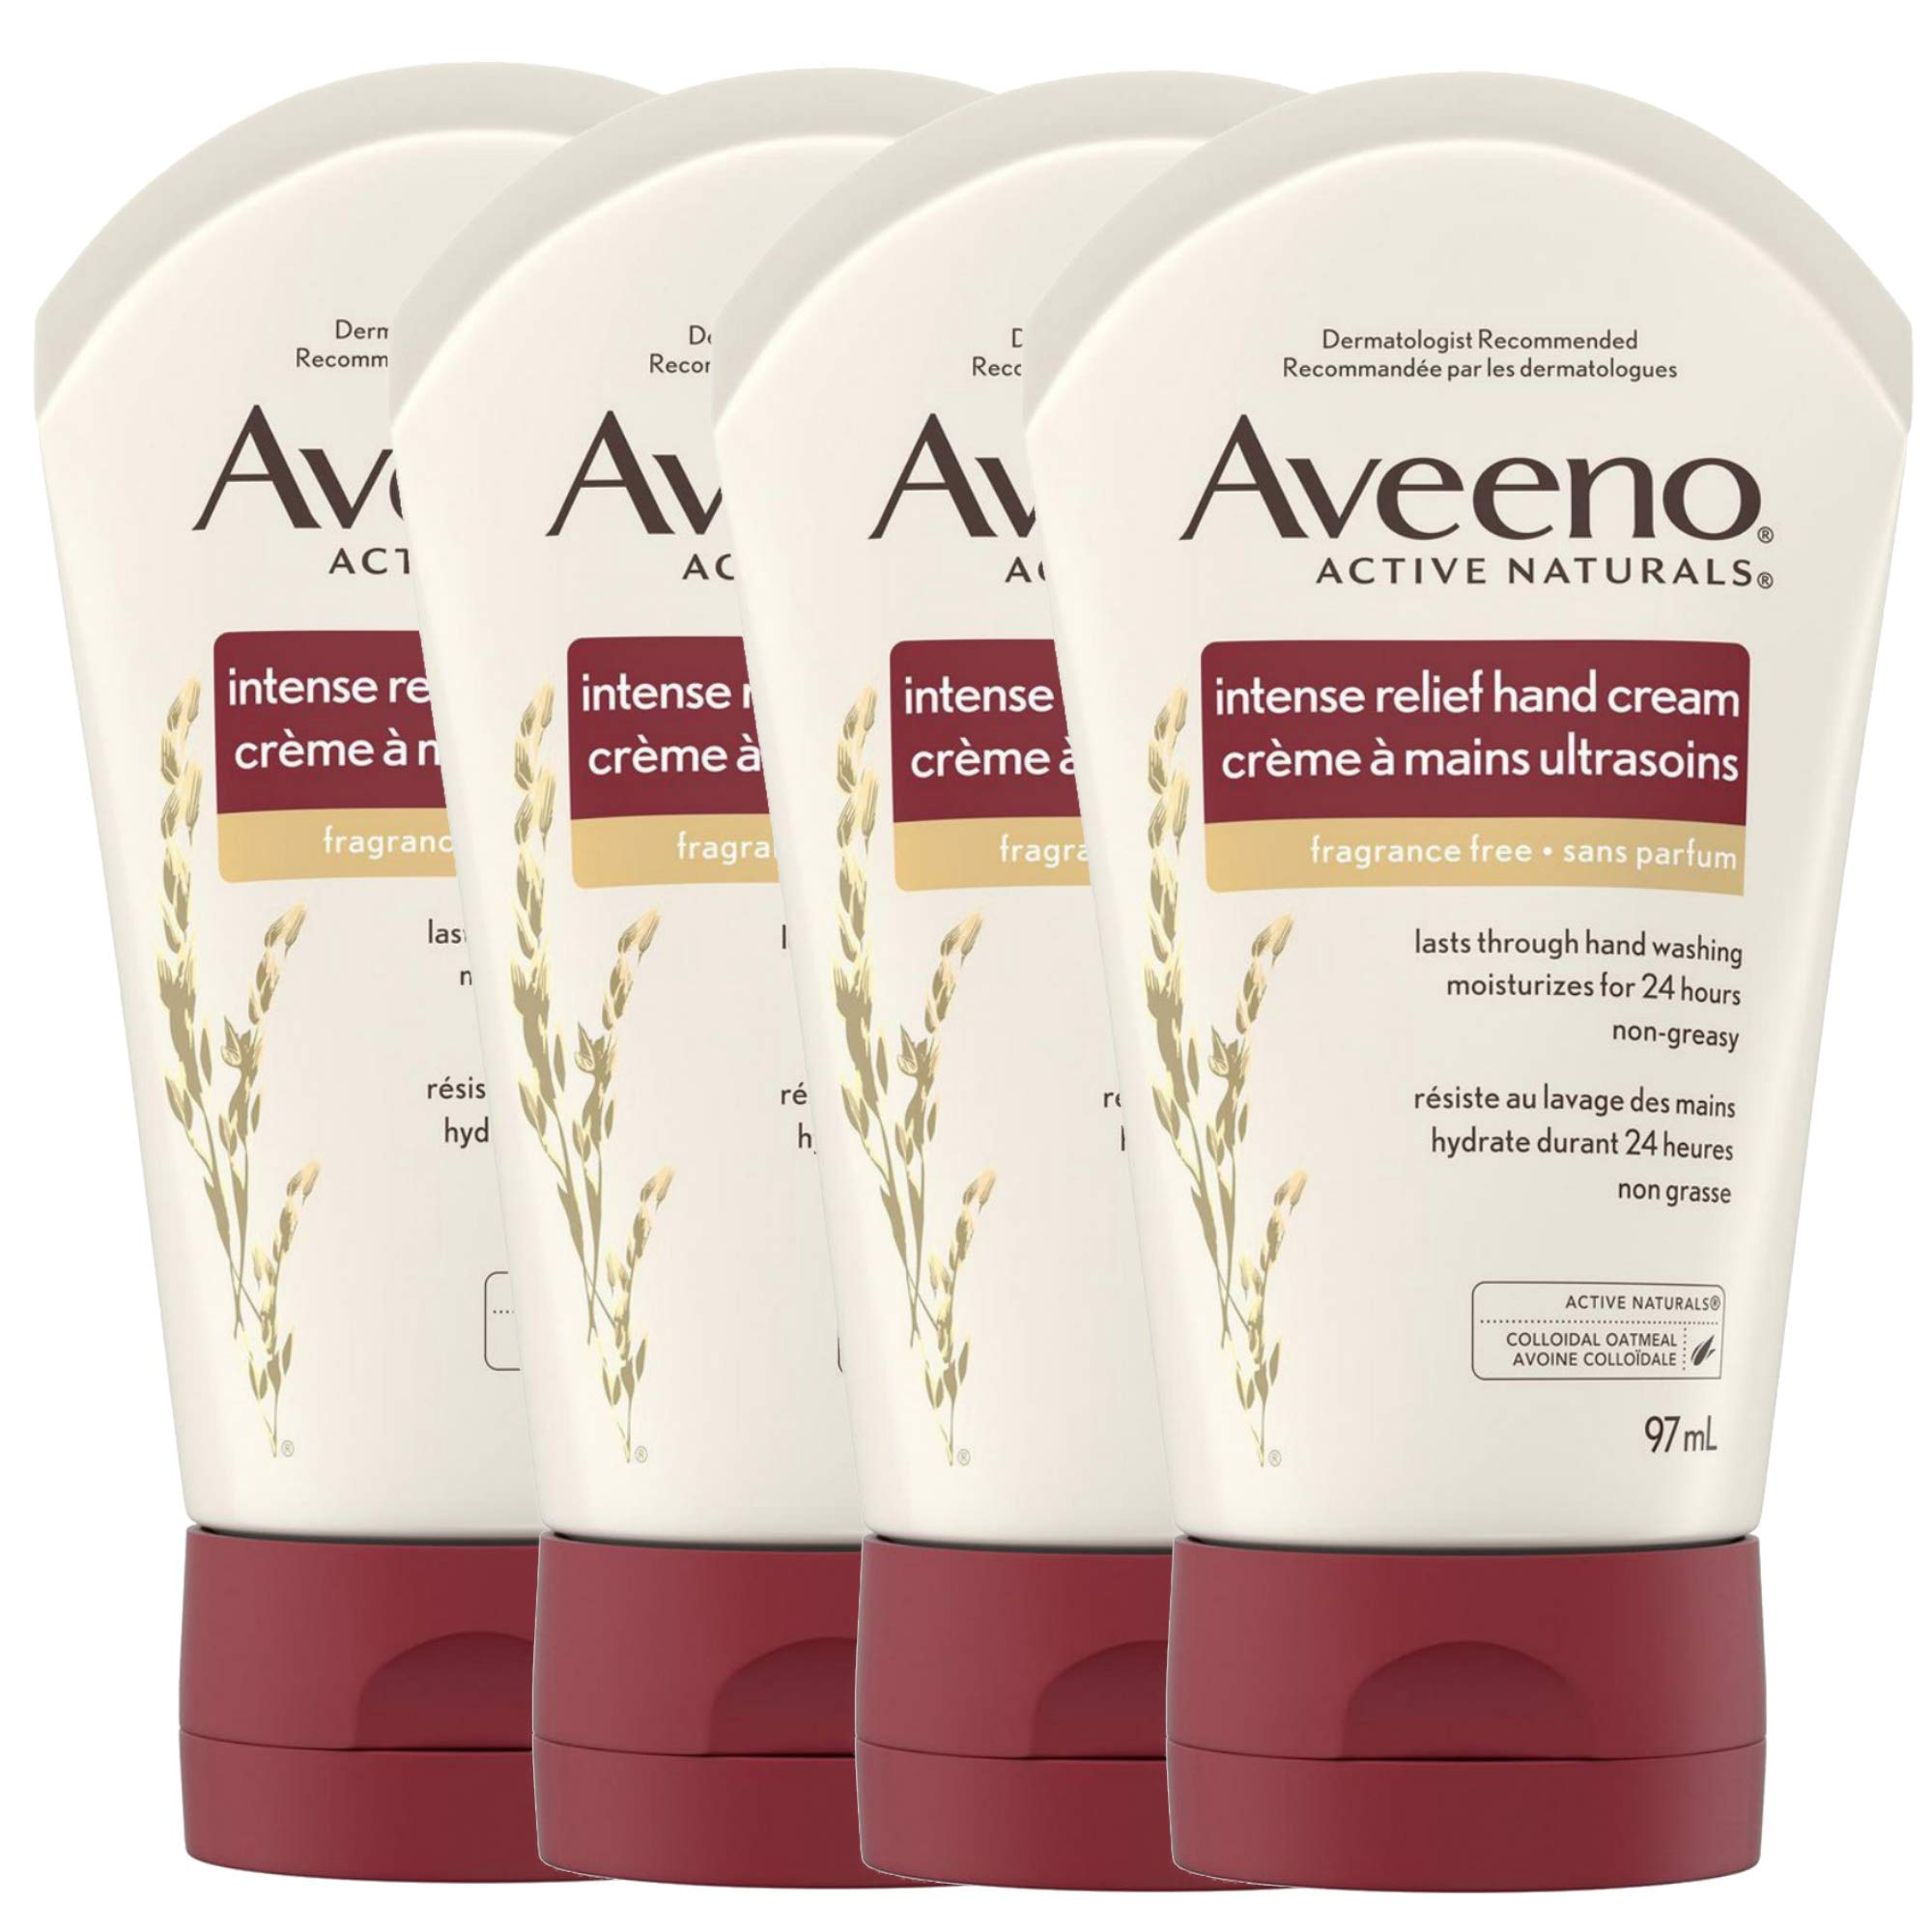 Aveeno Intense Skin Relief Hand Cream with Natural Colloidal Oatmeal, 24Hr Moisture/Non Greasy/Fragrance Free - 13.2 Fl Oz - 4 Pack x 3.3 Fl Oz / 97 mL Each by Aveeno